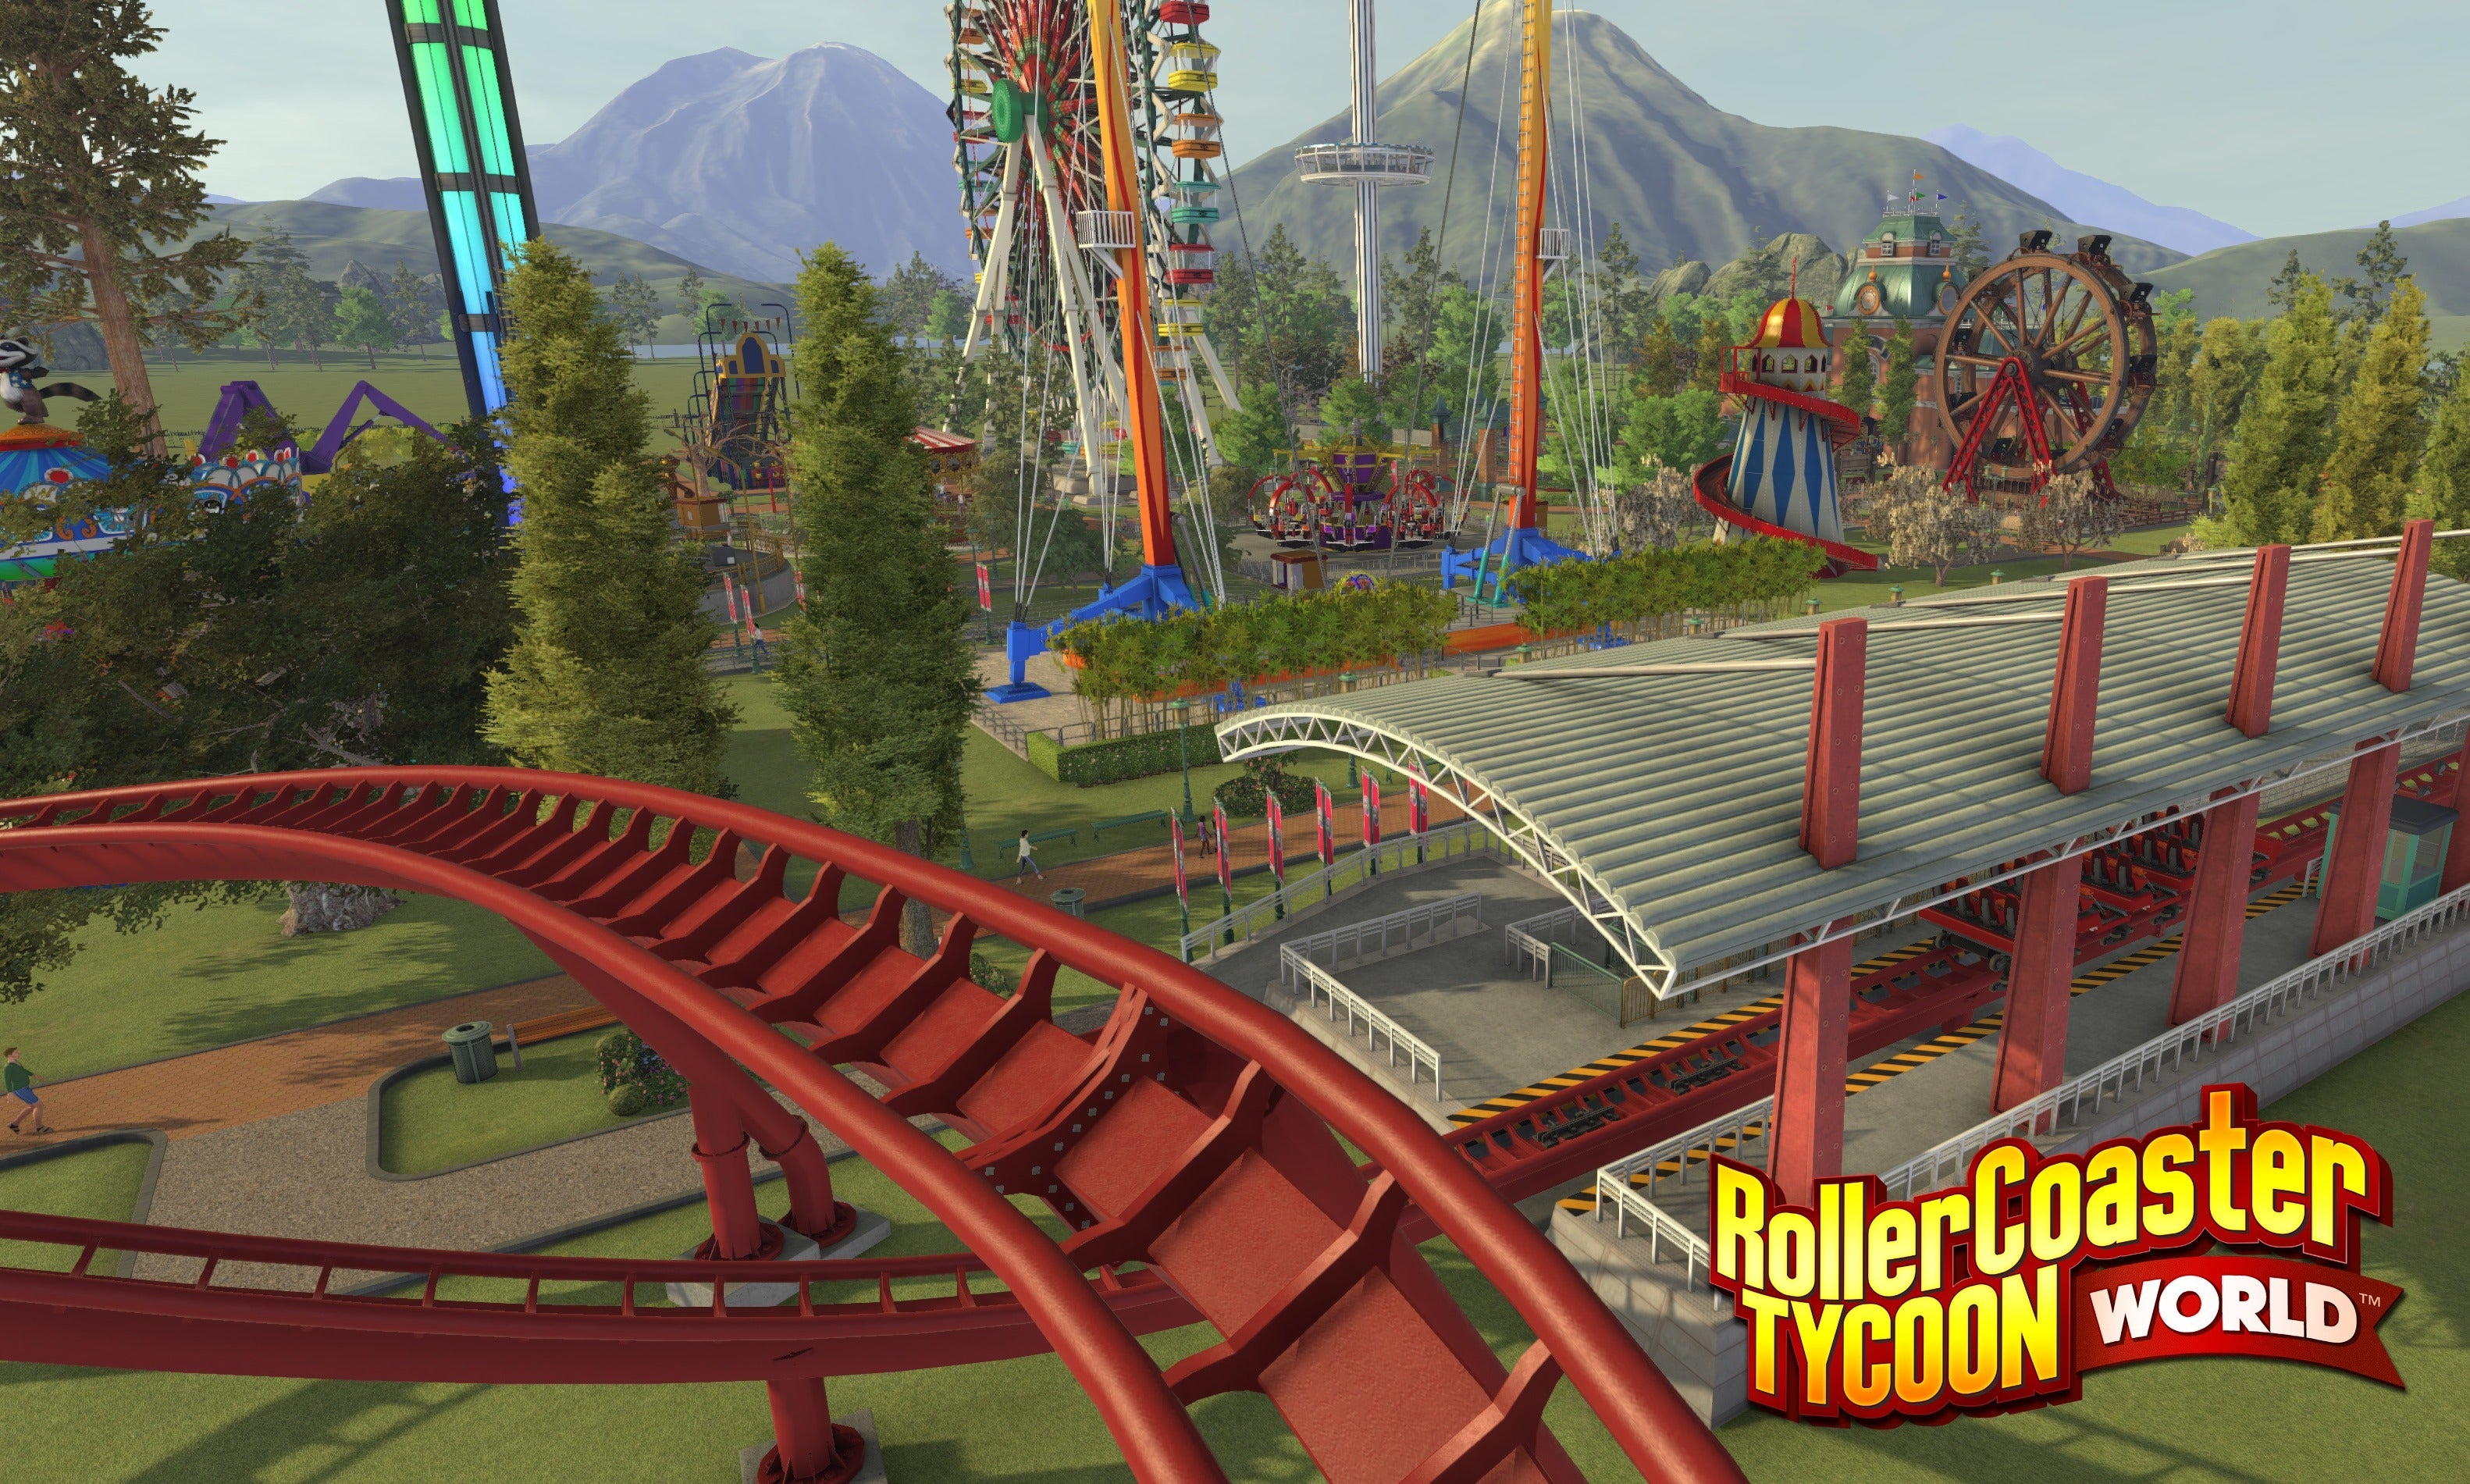 Rollercoaster tycoon download for tablet | How To Get